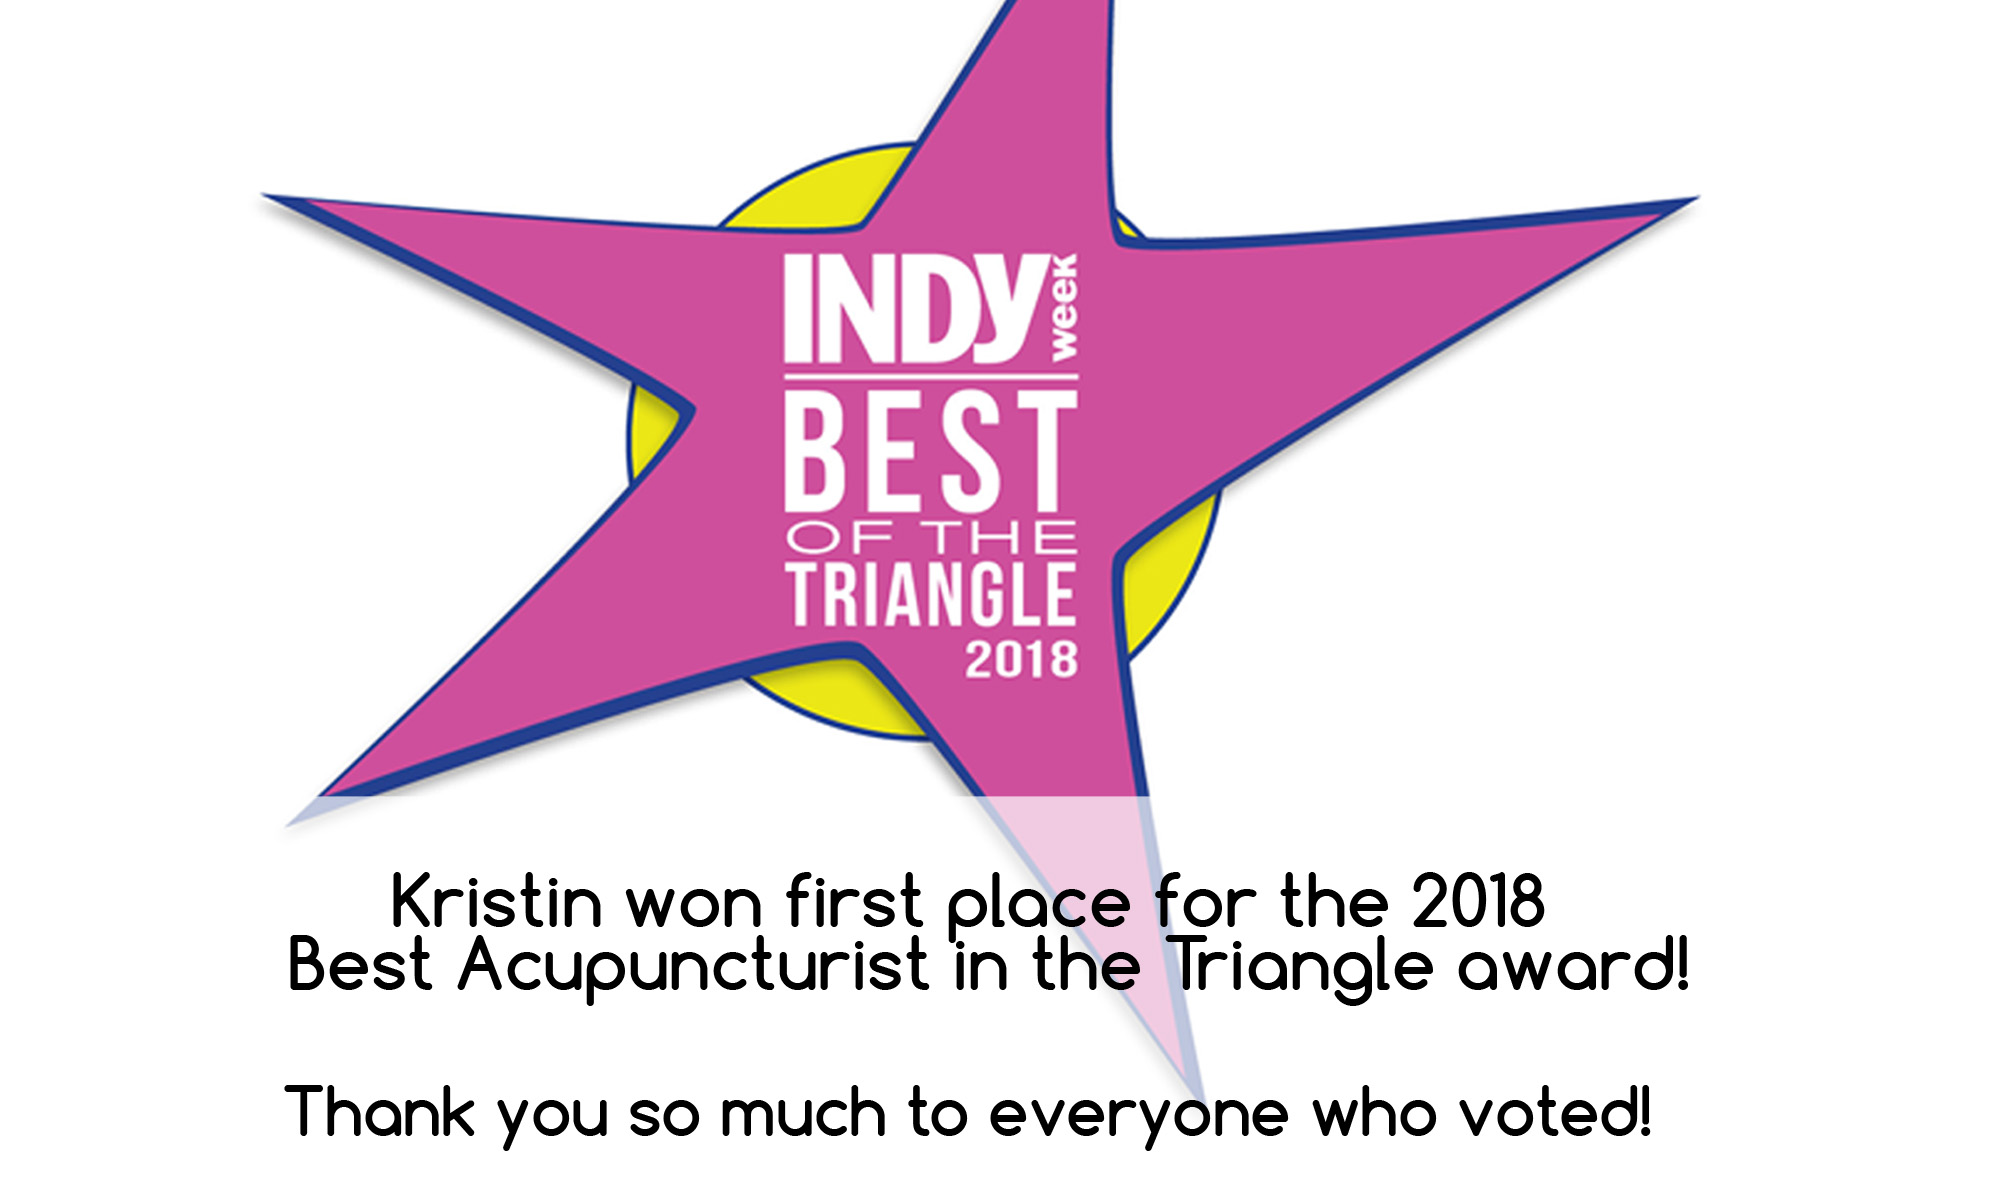 Indy Best Acupuncturist in the Triangle Award